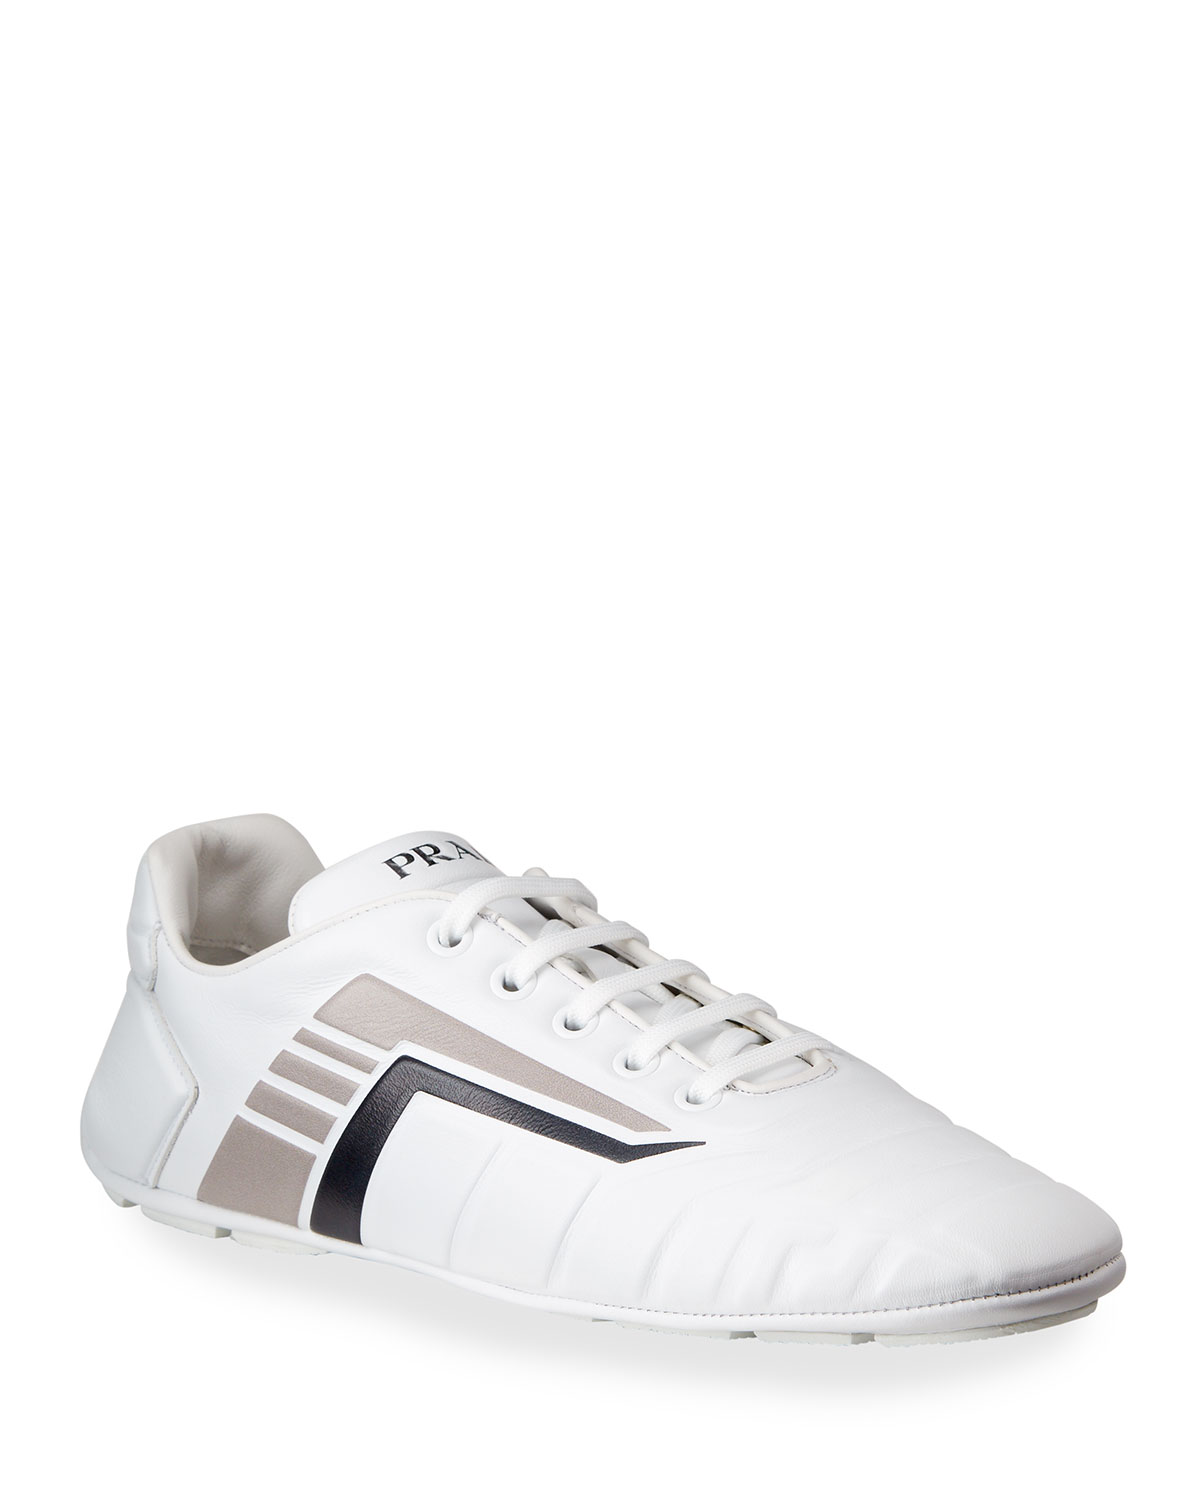 Prada QUILTED LEATHER FLAT SNEAKERS